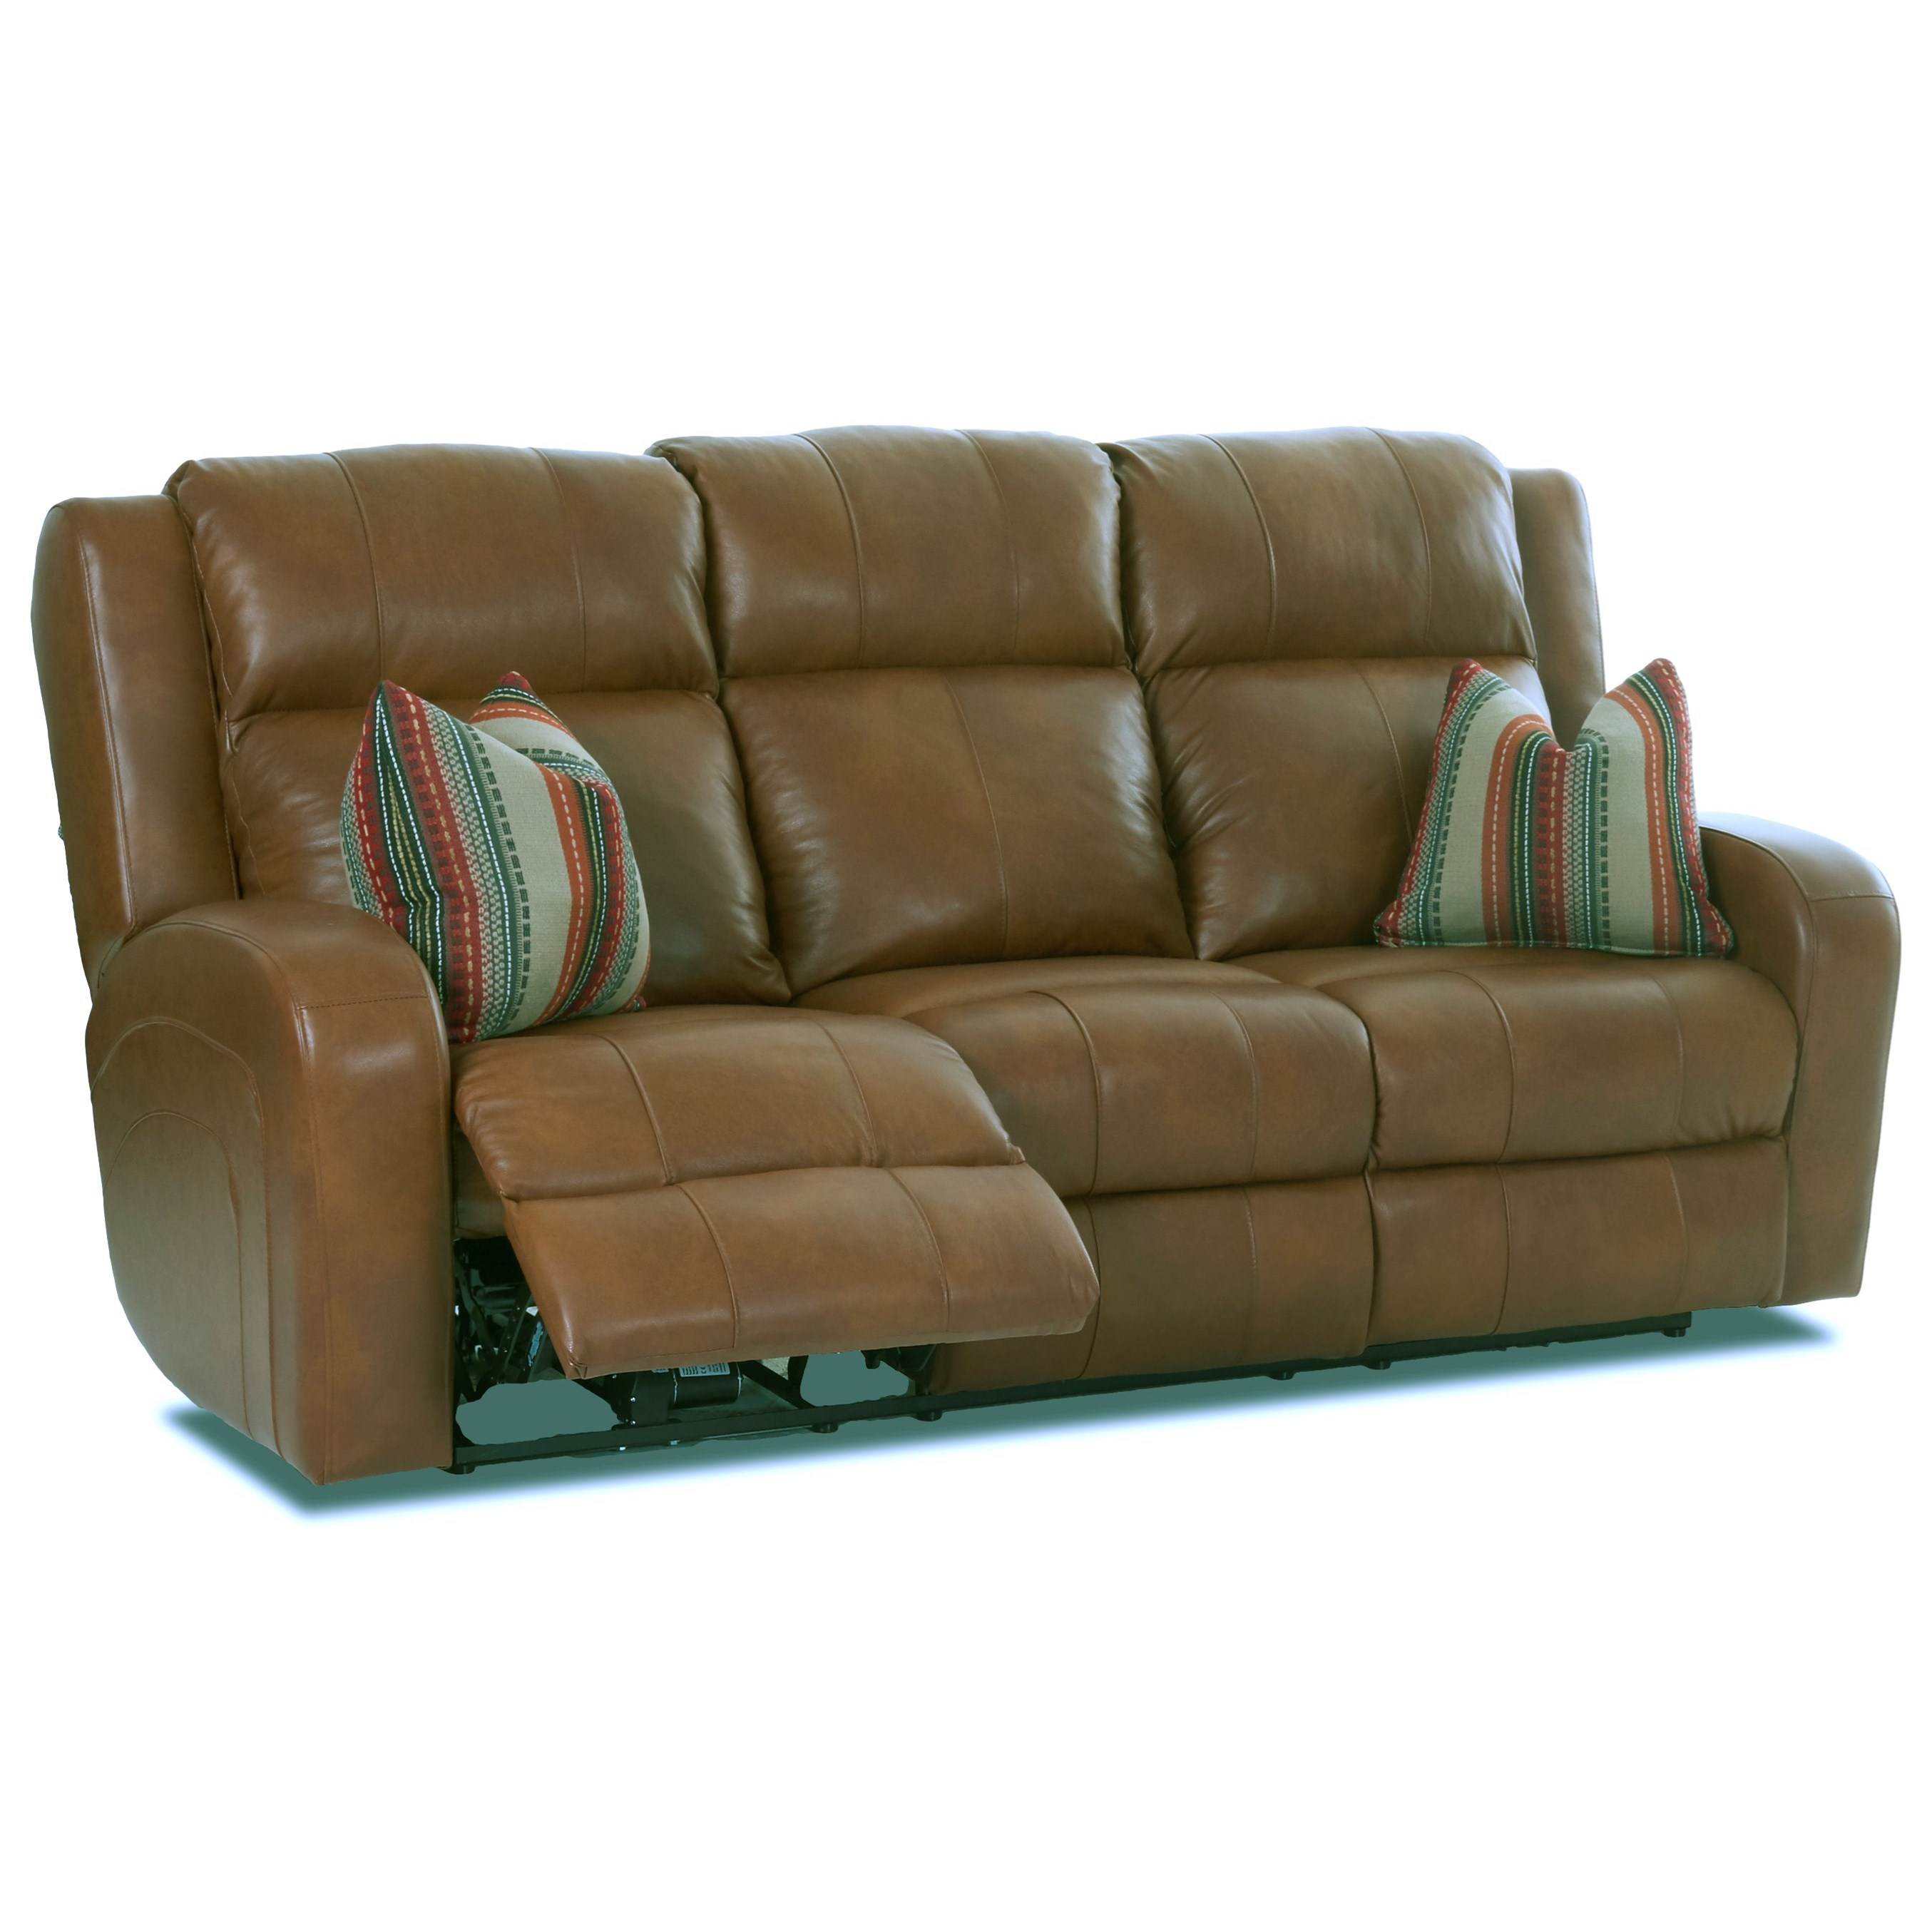 Klaussner Robinson Power Reclining Leather Sofa With Power